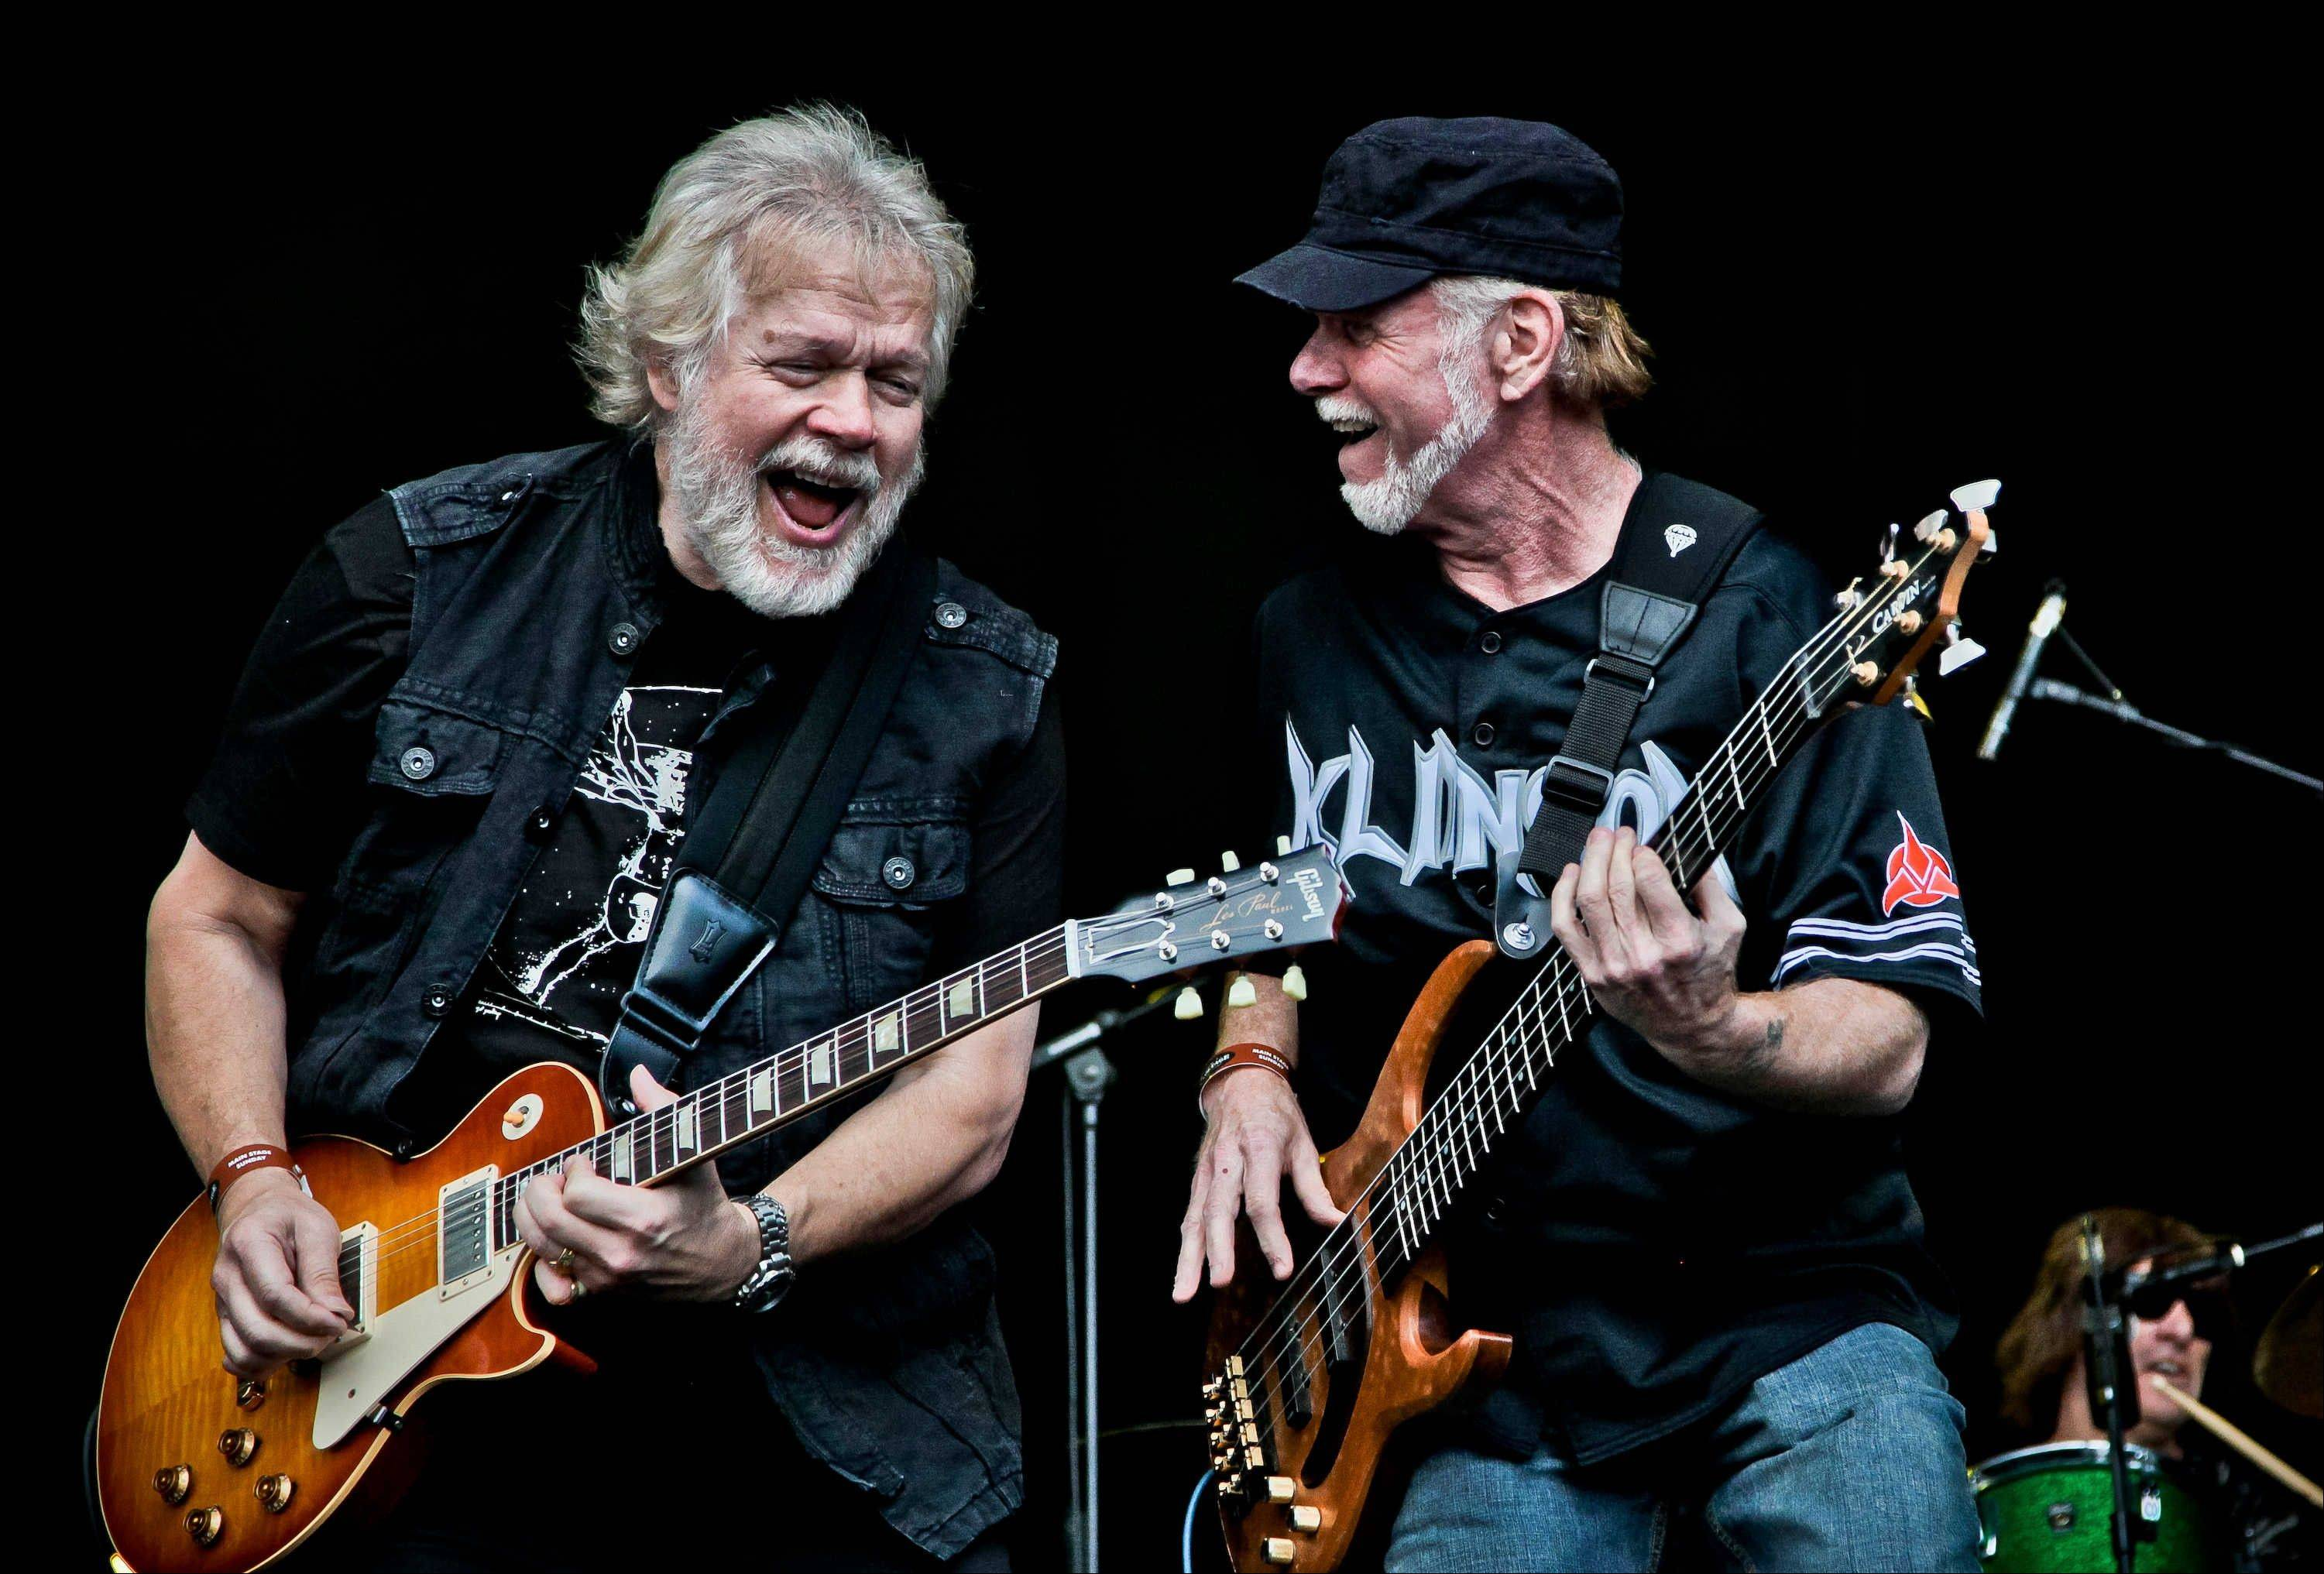 Randy Bachman, left, and Fred Turner of Bachman Turner Overdrive fame jam during a performance. The duo will reunite at the Arcada Theatre in St. Charles for an 8 p.m. Friday show.